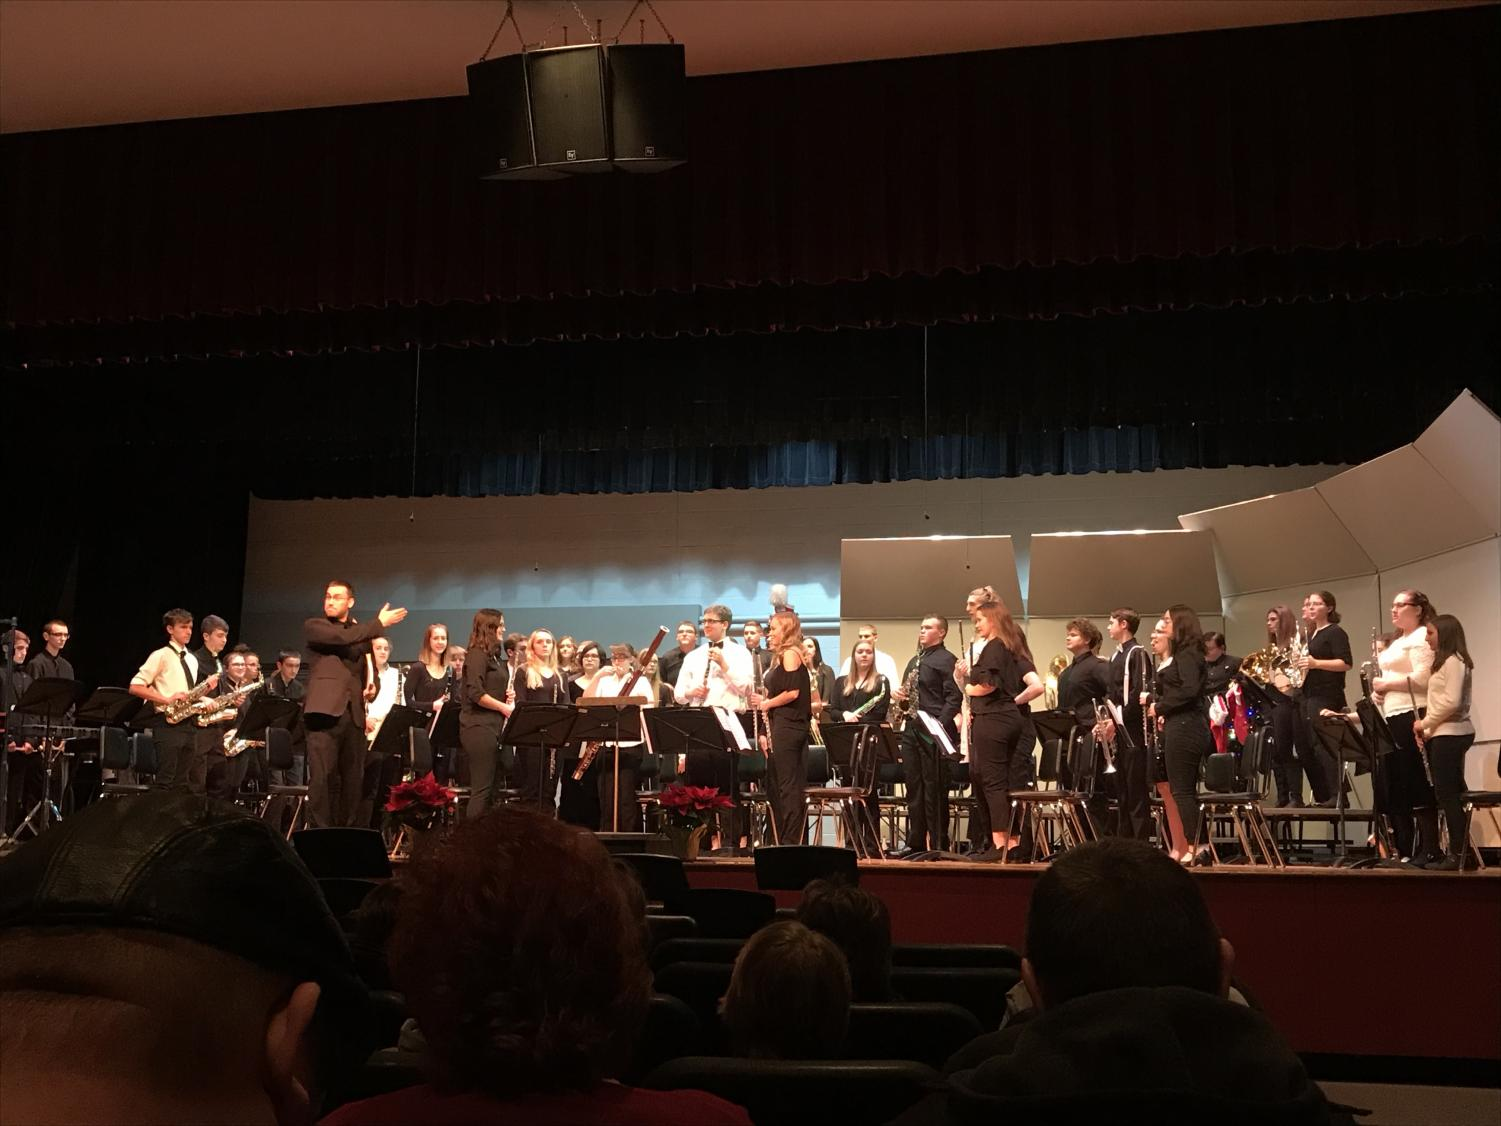 High School band files onto the stage before performing their first piece.